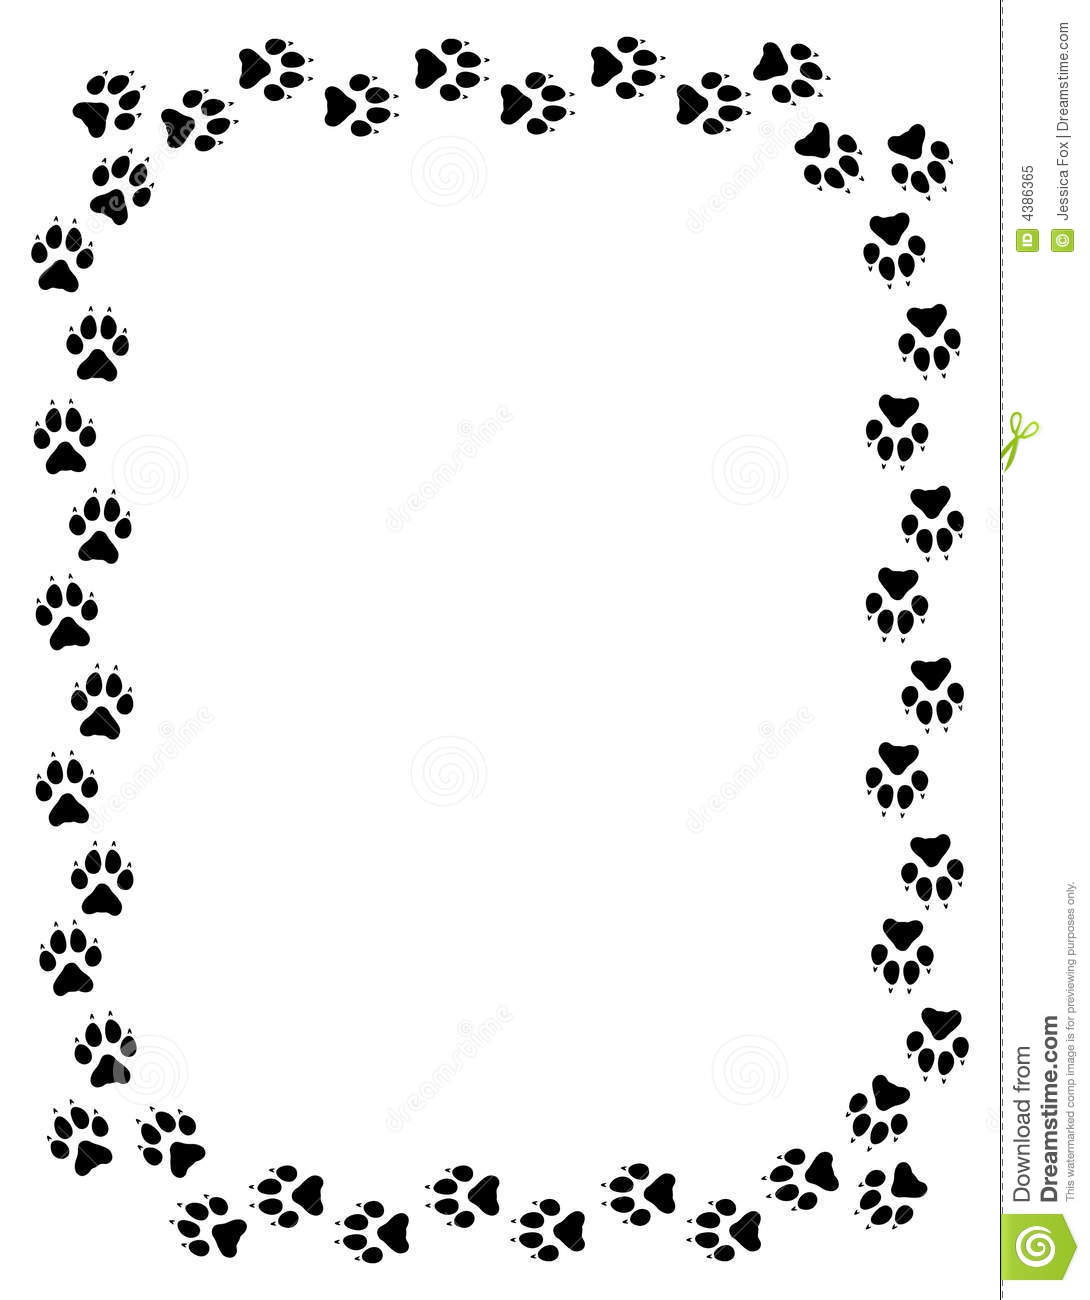 Black And White Dog Grooming Binder Cover Printable